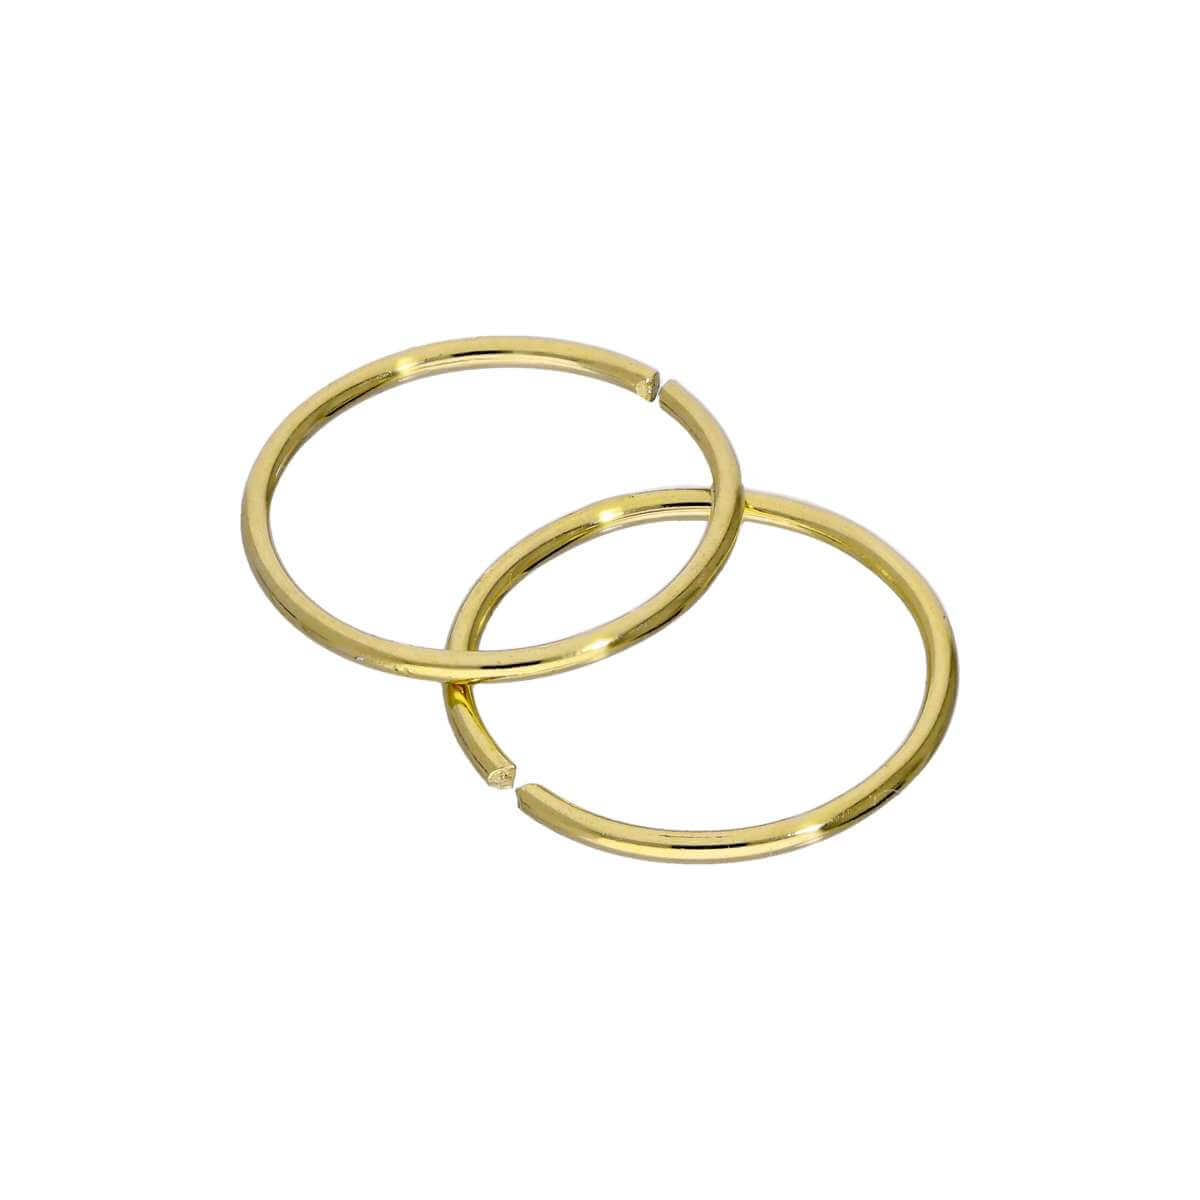 Gold Plated Sterling Silver 9mm Hoop Earrings